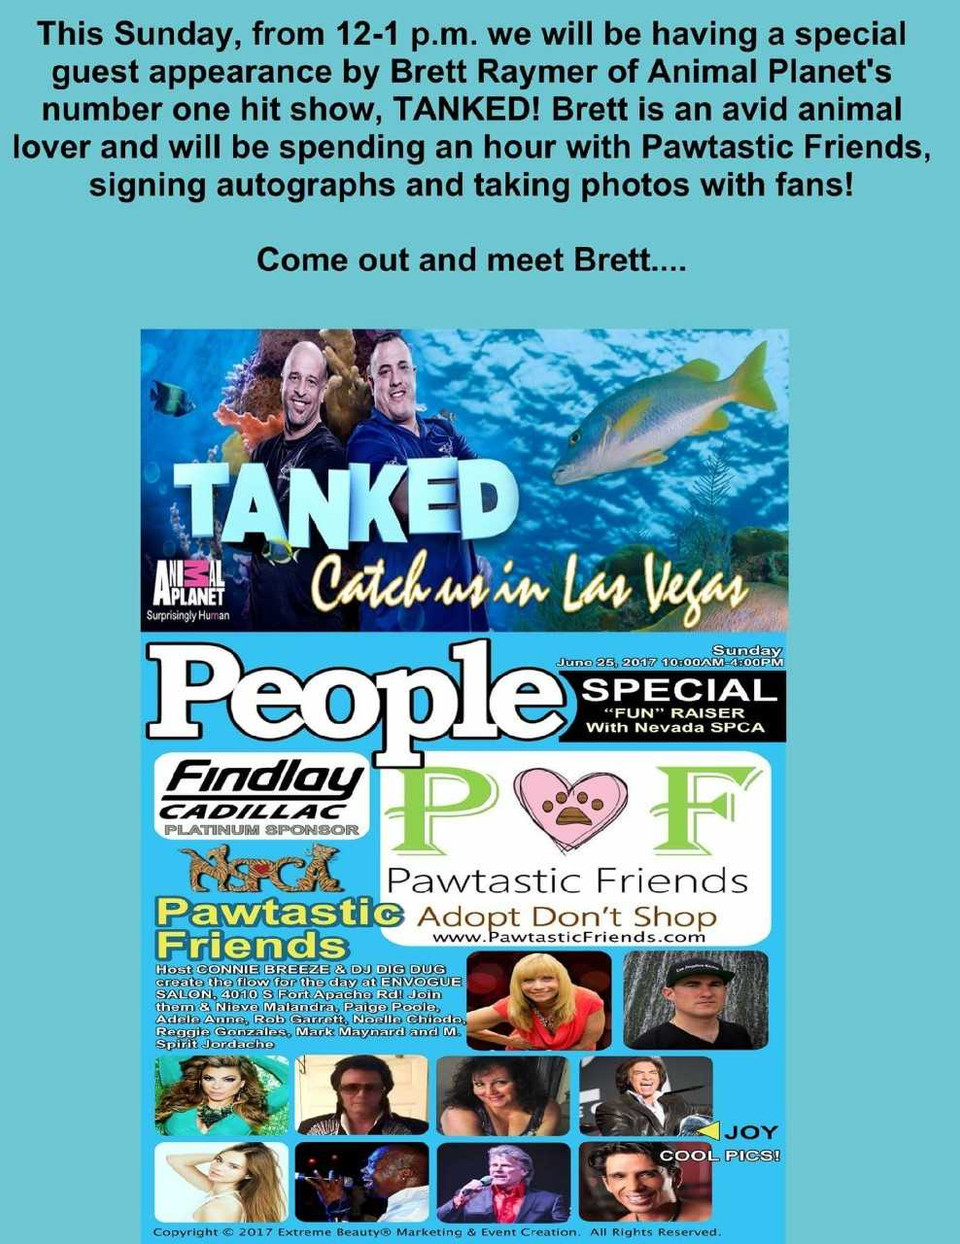 TANKED! Brett Raymer appearing at the upcoming Fundraiser!